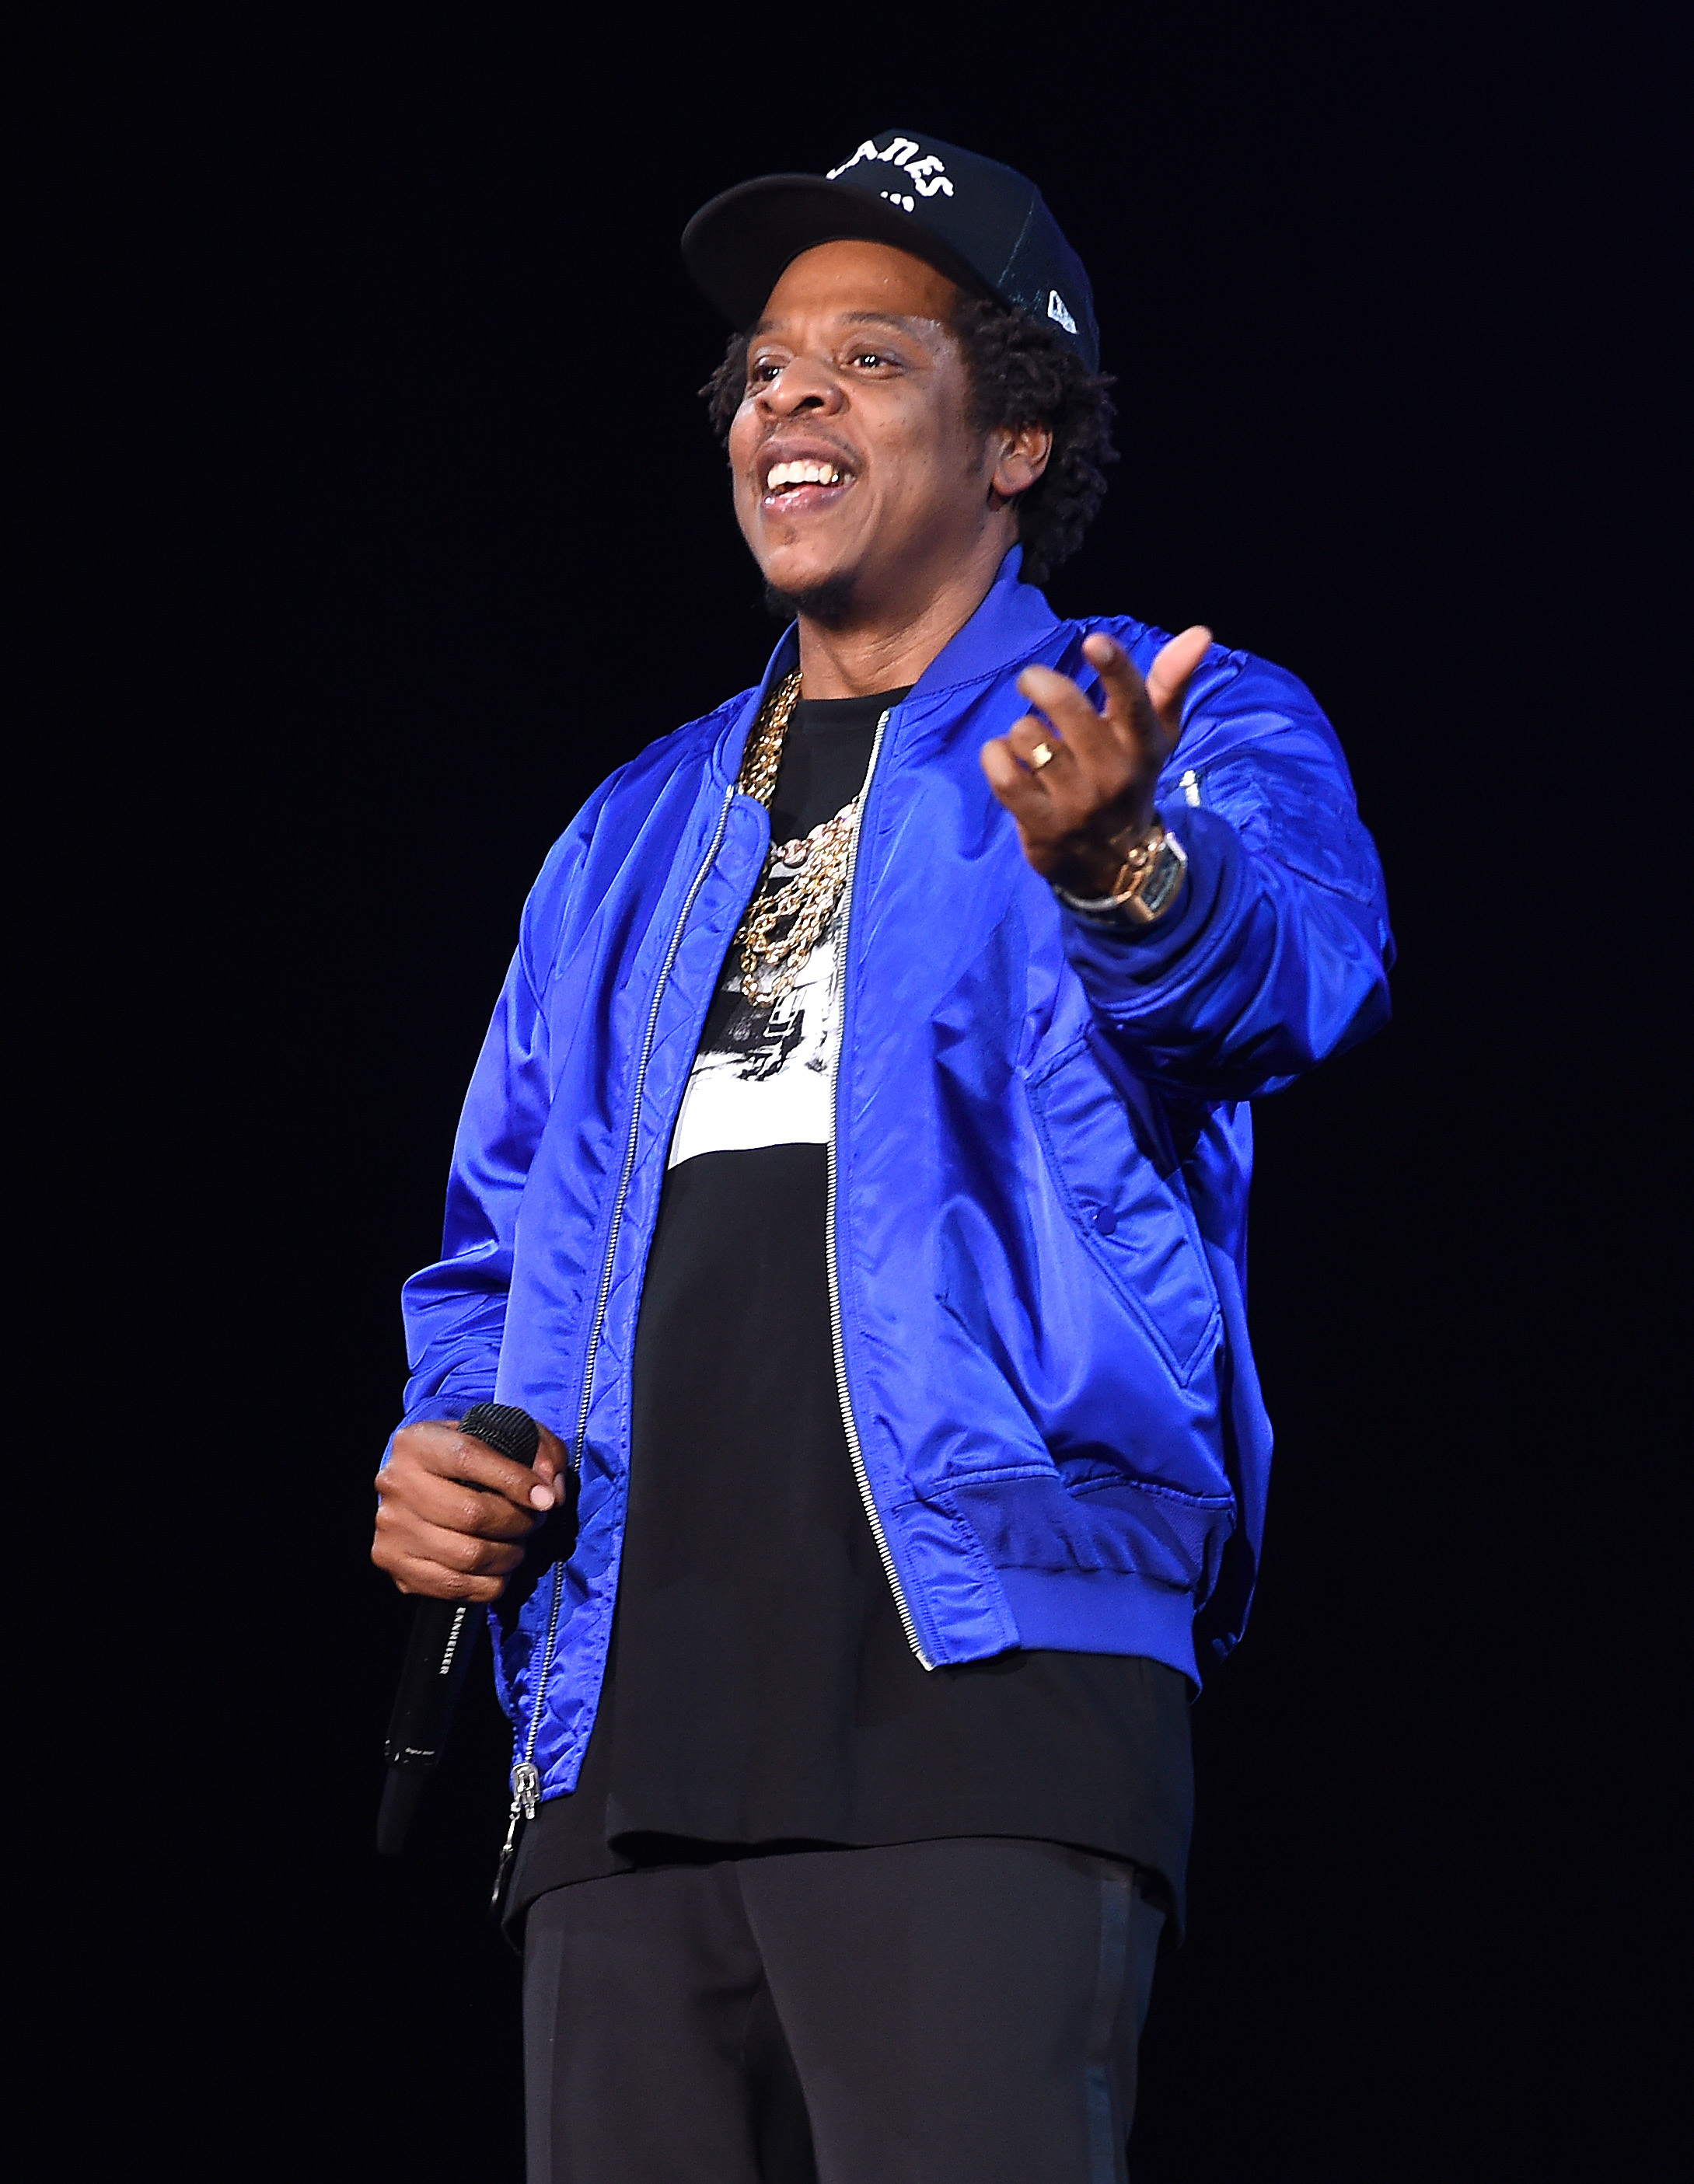 JAY Z, Dave Matthews Band and more to headline major music festivals